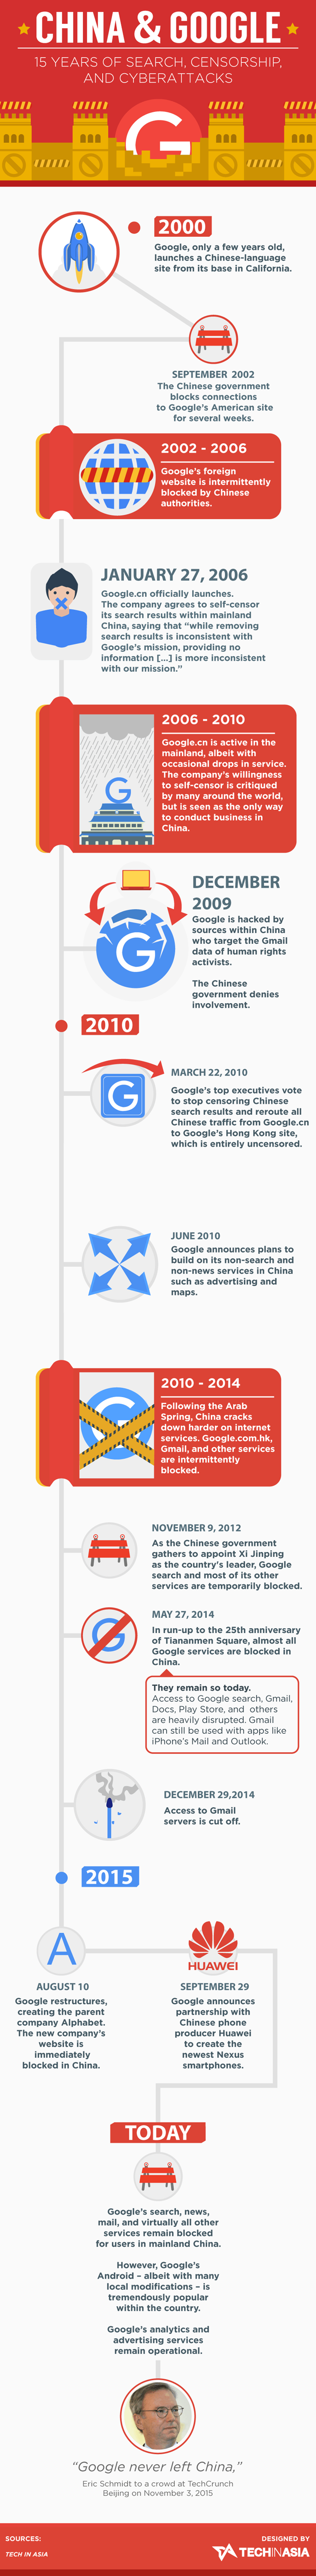 china-and-google-history-3